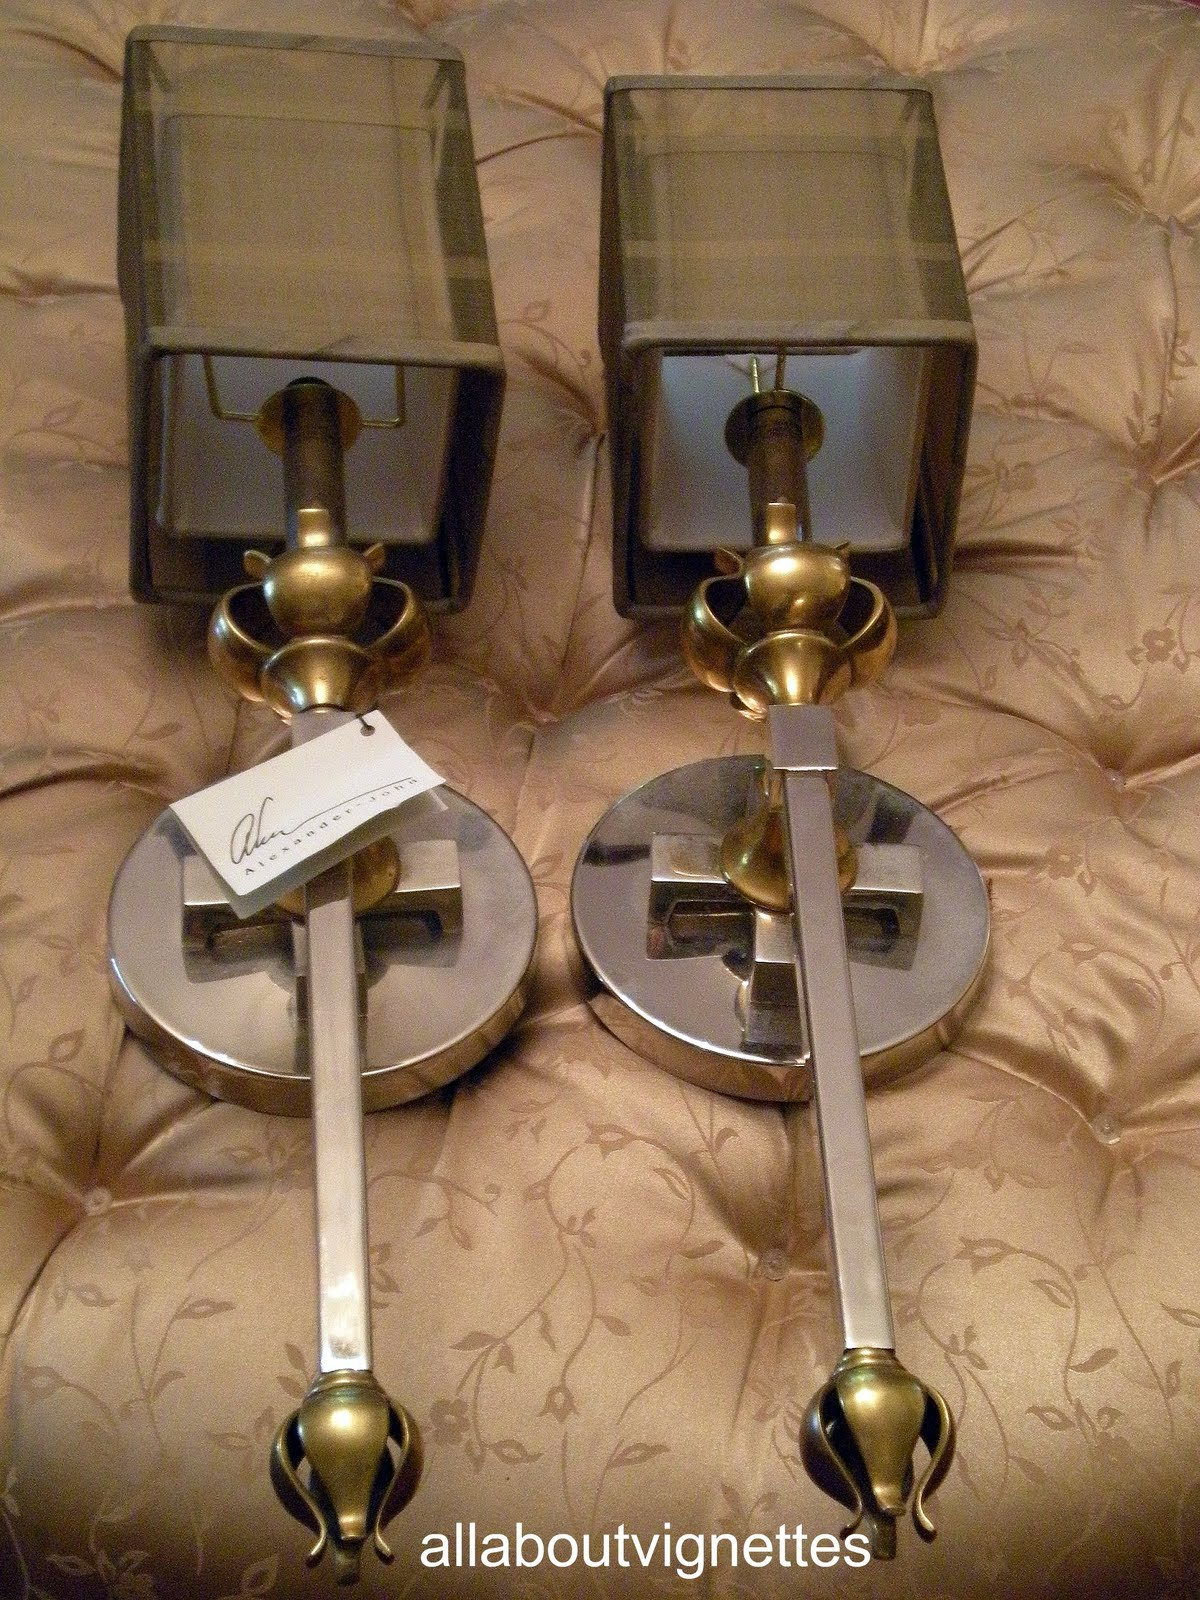 Wall Sconces In Foyer : All About Vignettes: Foyer Wall Sconce Change Up